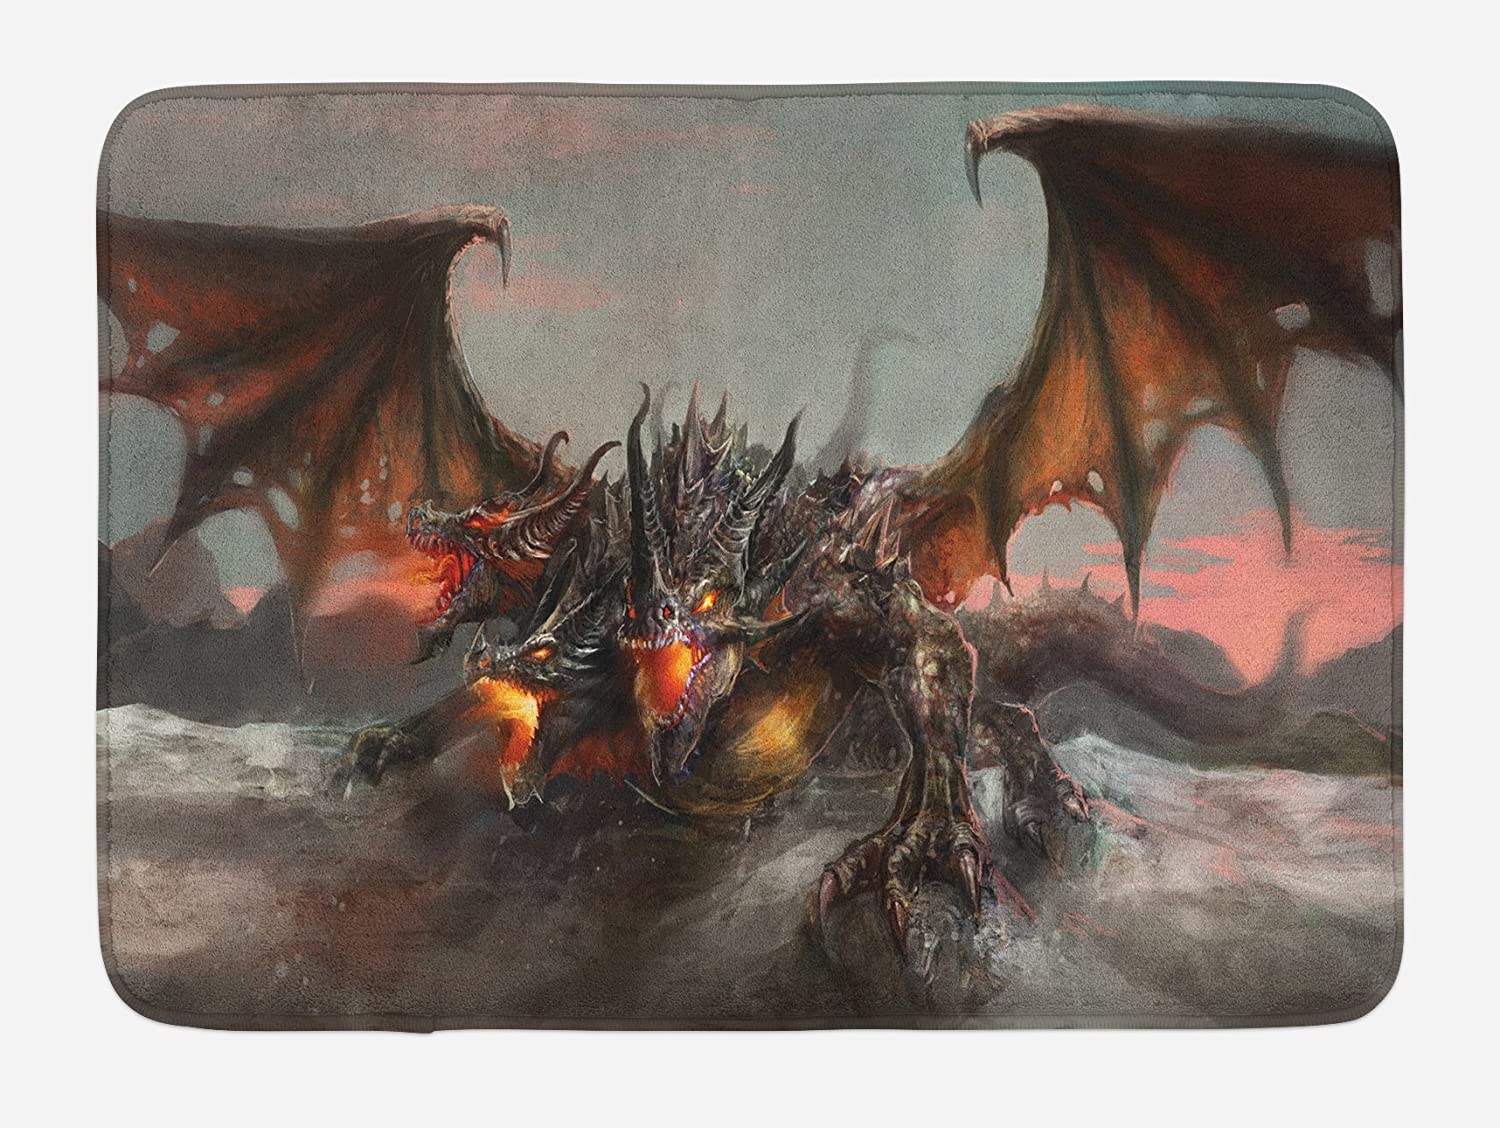 "Ambesonne Fantasy World Bath Mat, Illustration of 3 Headed Fire Breathing Dragon Large Monster Gothic Theme, Plush Bathroom Decor Mat with Non Slip Backing, 29.5"" X 17.5"", Brown Grey"